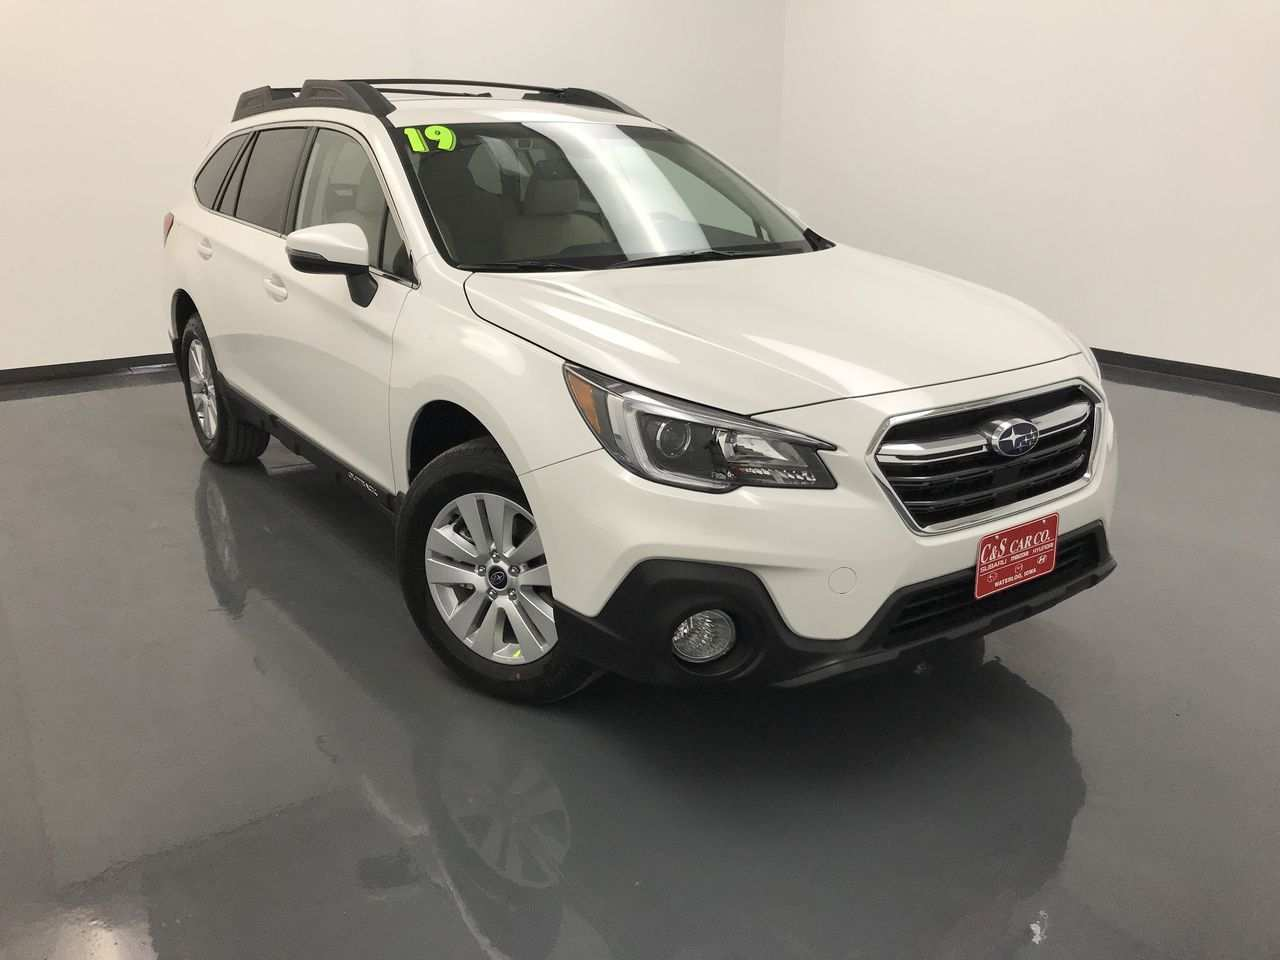 13 All New Subaru Eyesight 2019 Price Design And Review